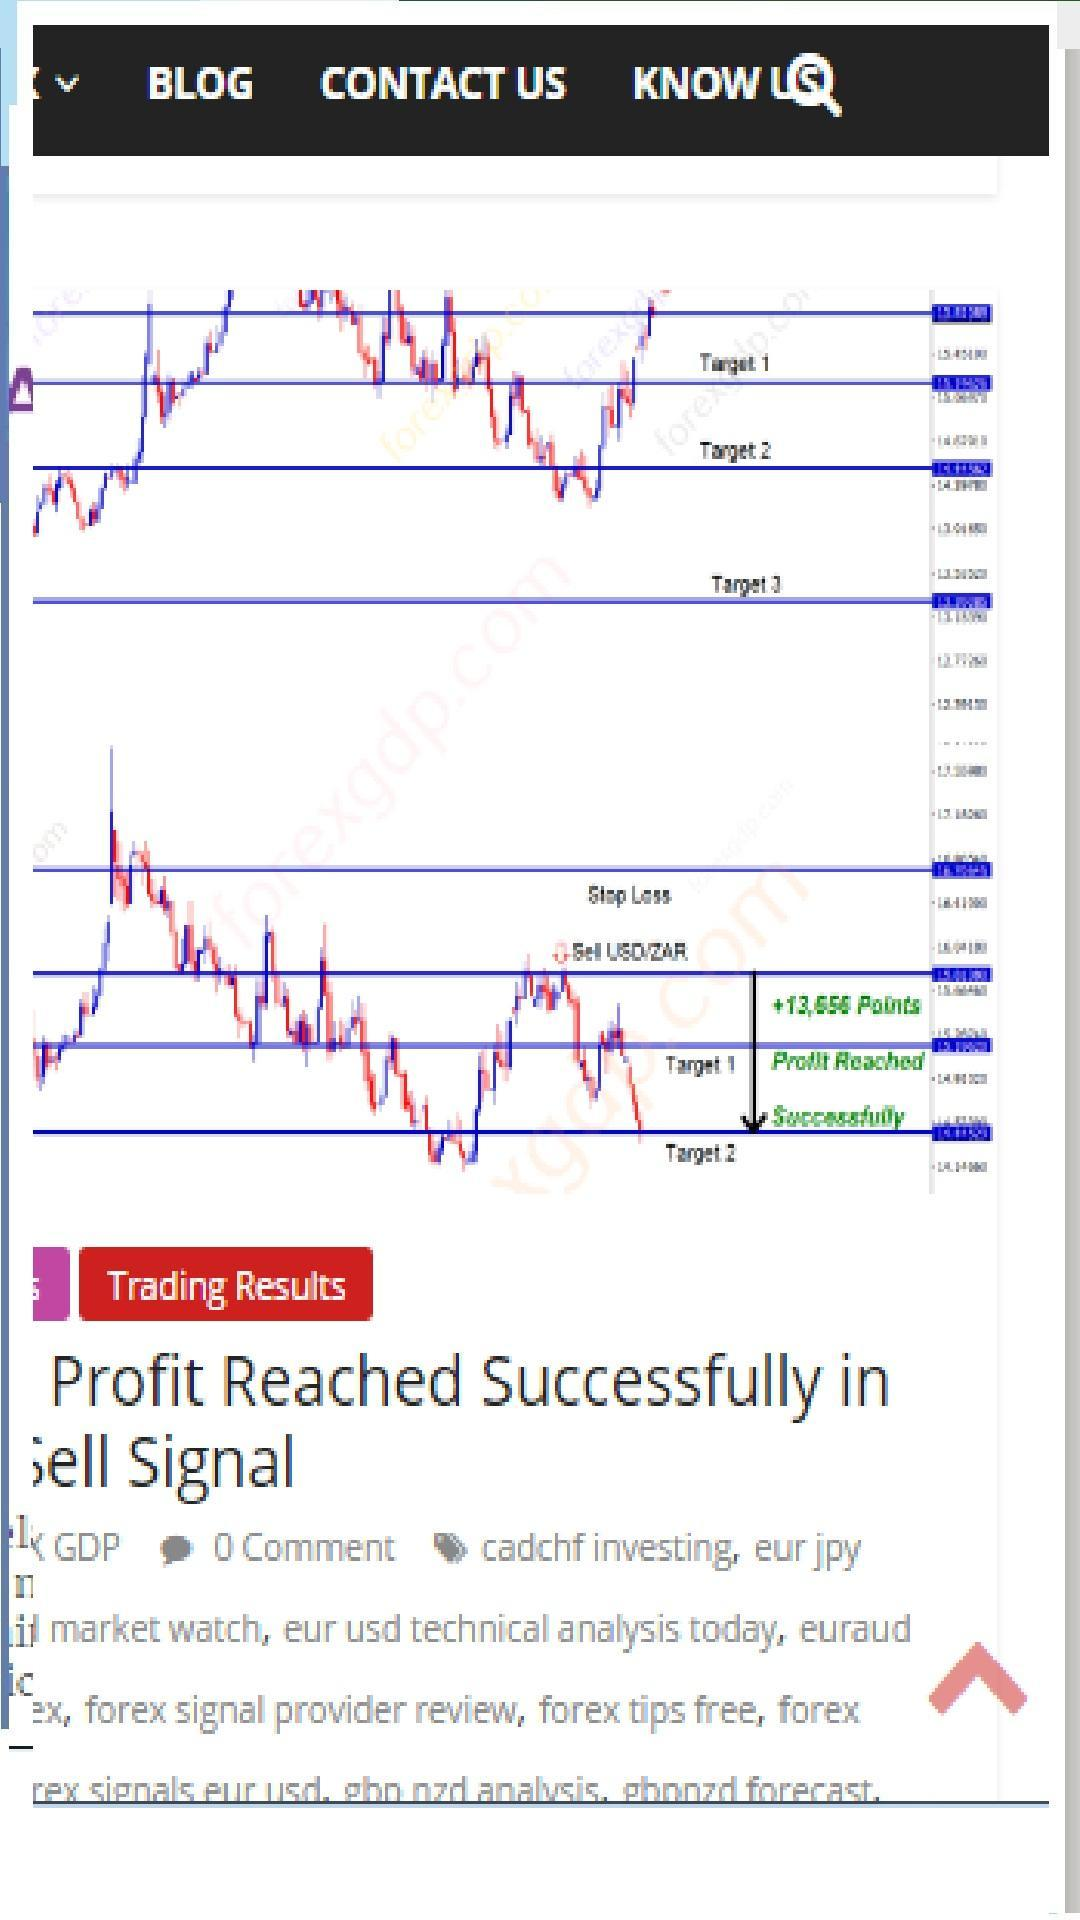 Free forex signal blog online jobs in india without investment in hyderabad